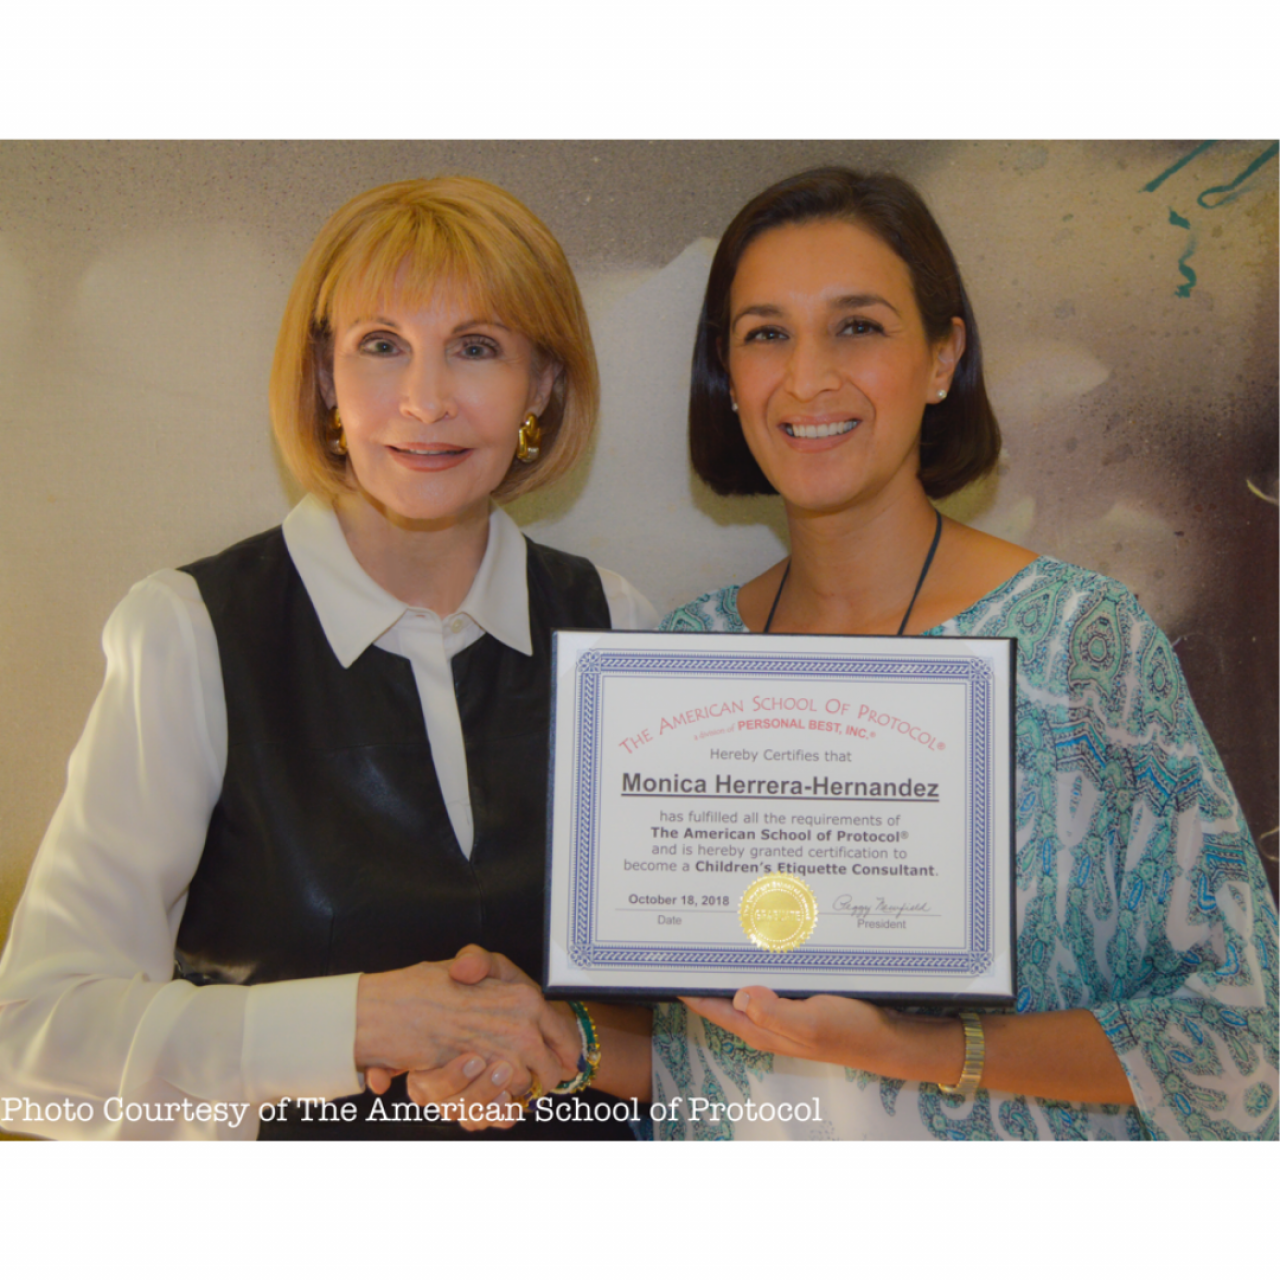 Monica Herrera-Hernandez holds her American School of Protocol diploma while shaking the hand of organization president Peggy Mansfield